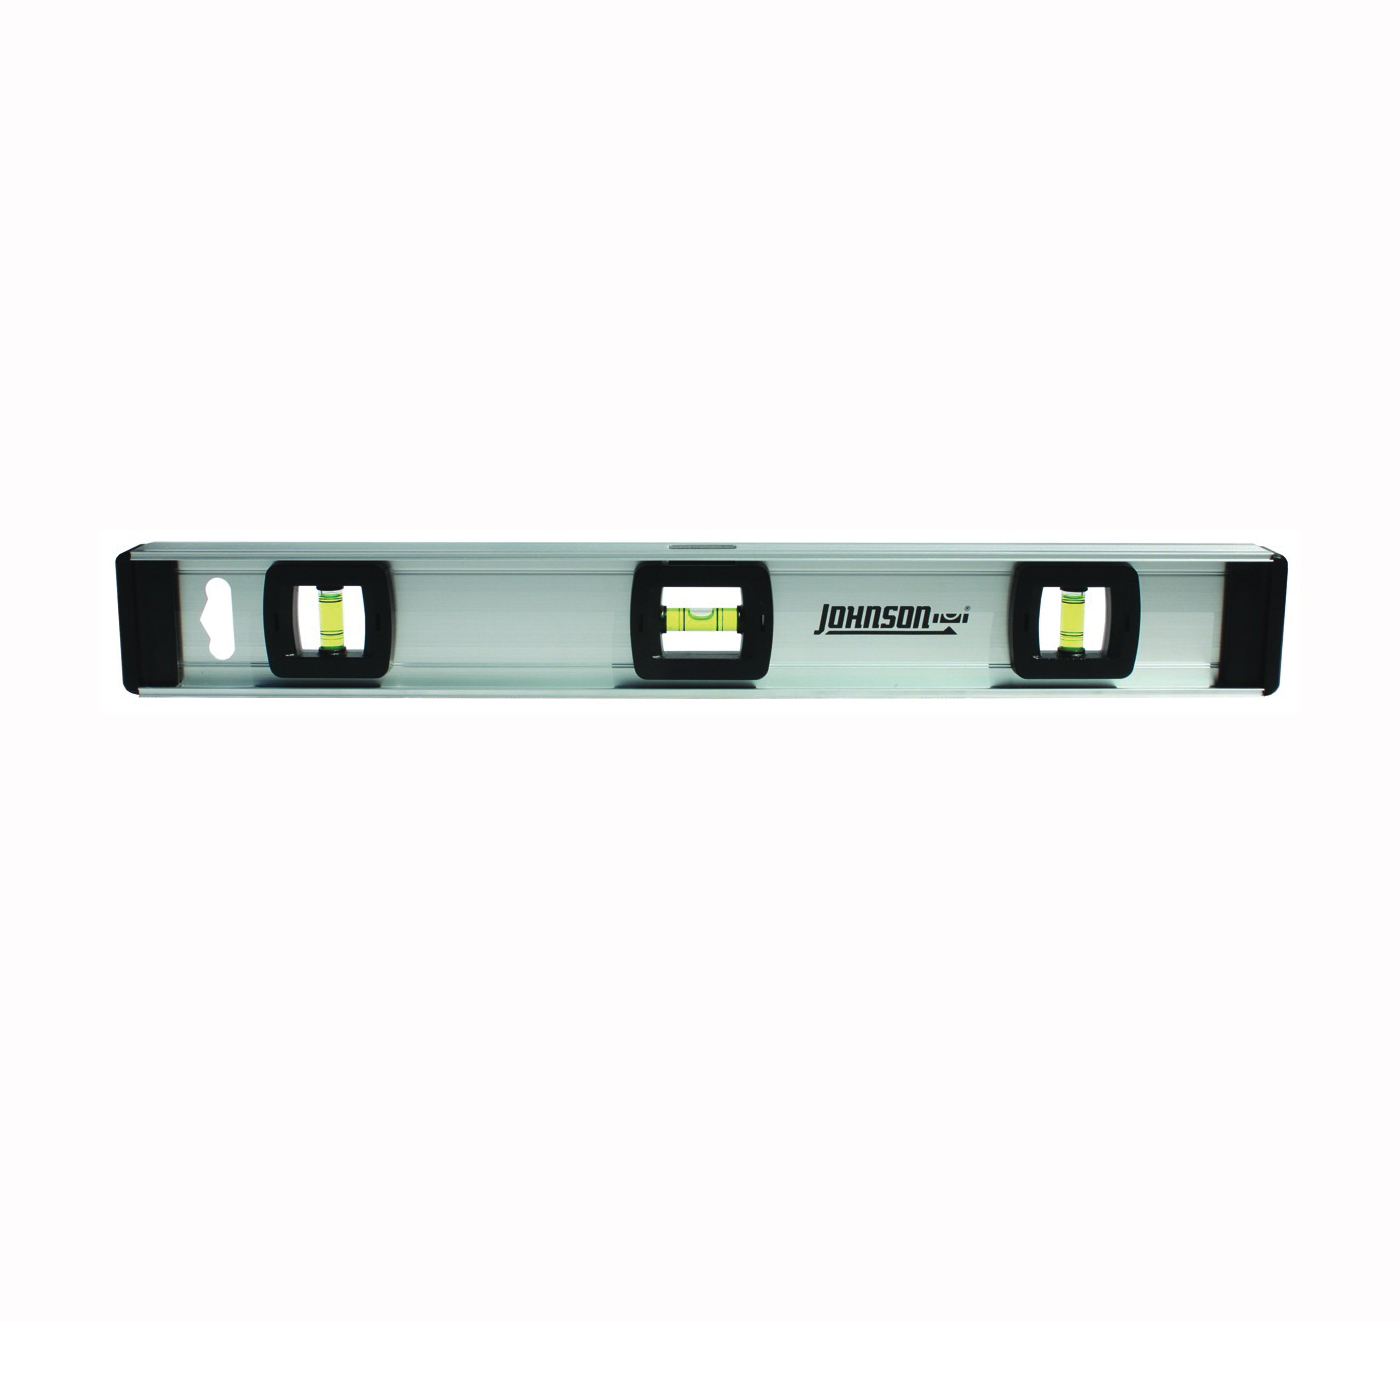 Picture of Johnson 1300-1800 I-Beam Level with Rule, 18 in L, 3 -Vial, Non-Magnetic, Aluminum, Silver